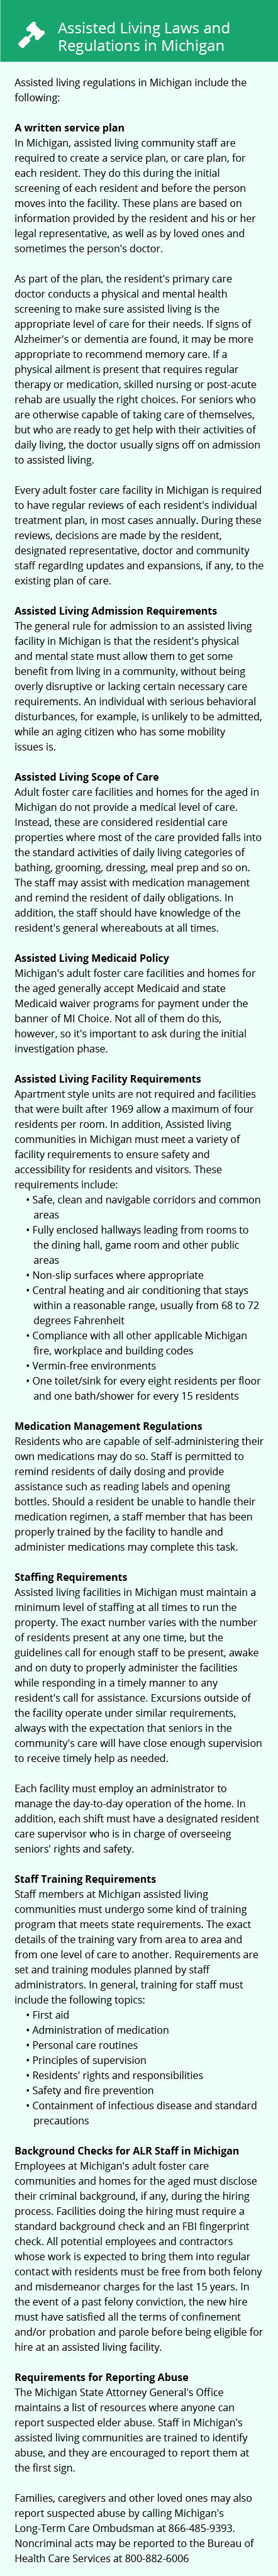 Laws and Regulations in Michigan